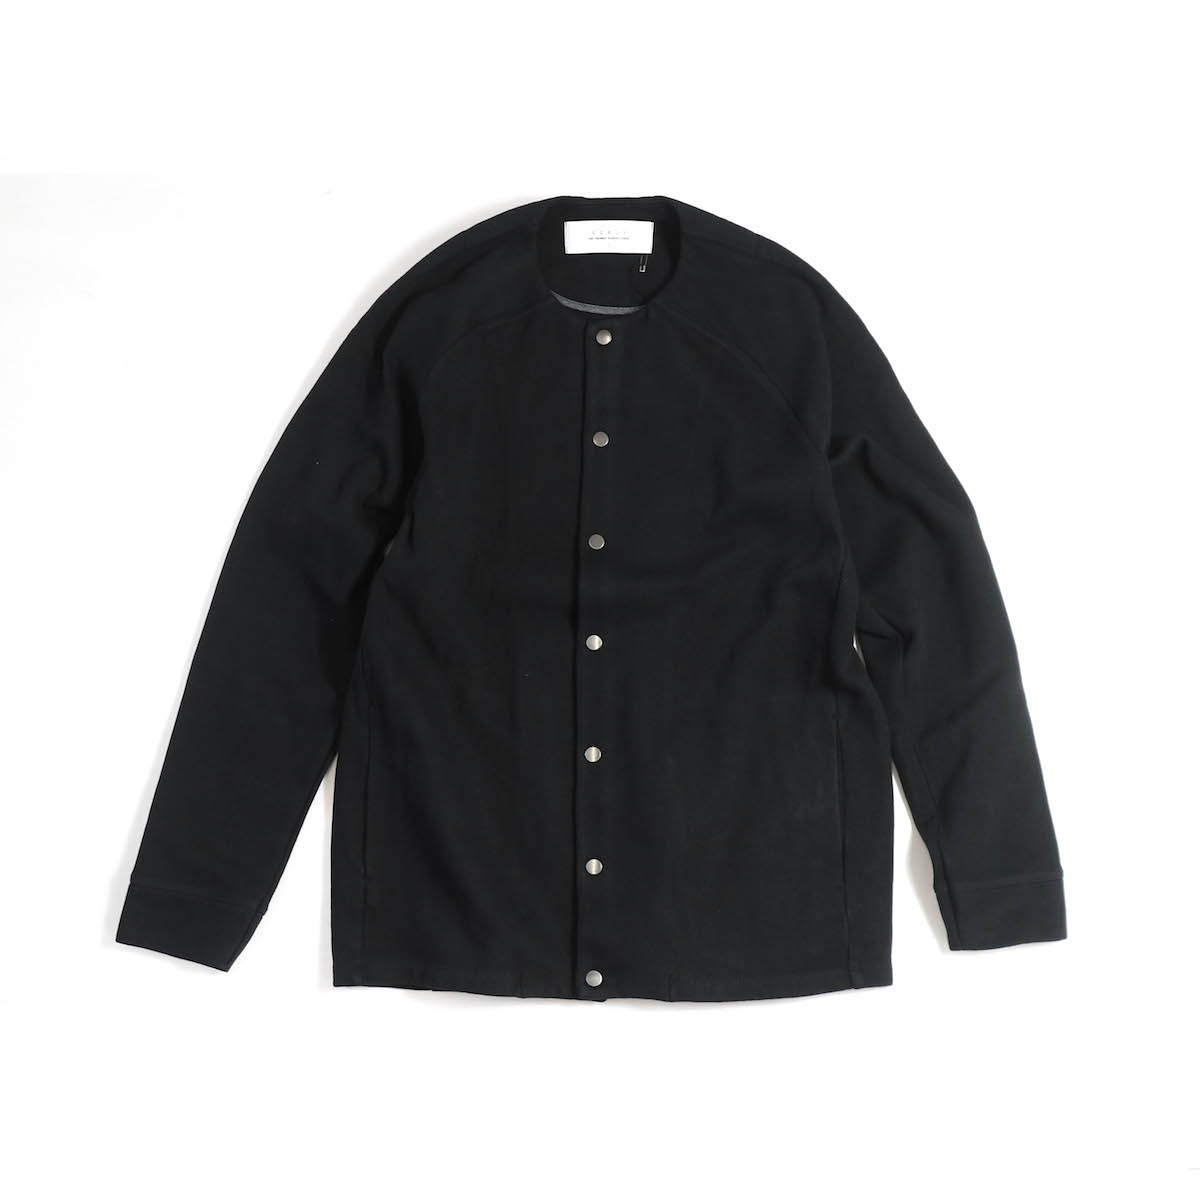 CURLY / FROSTED SNAP CARDE -BLACK